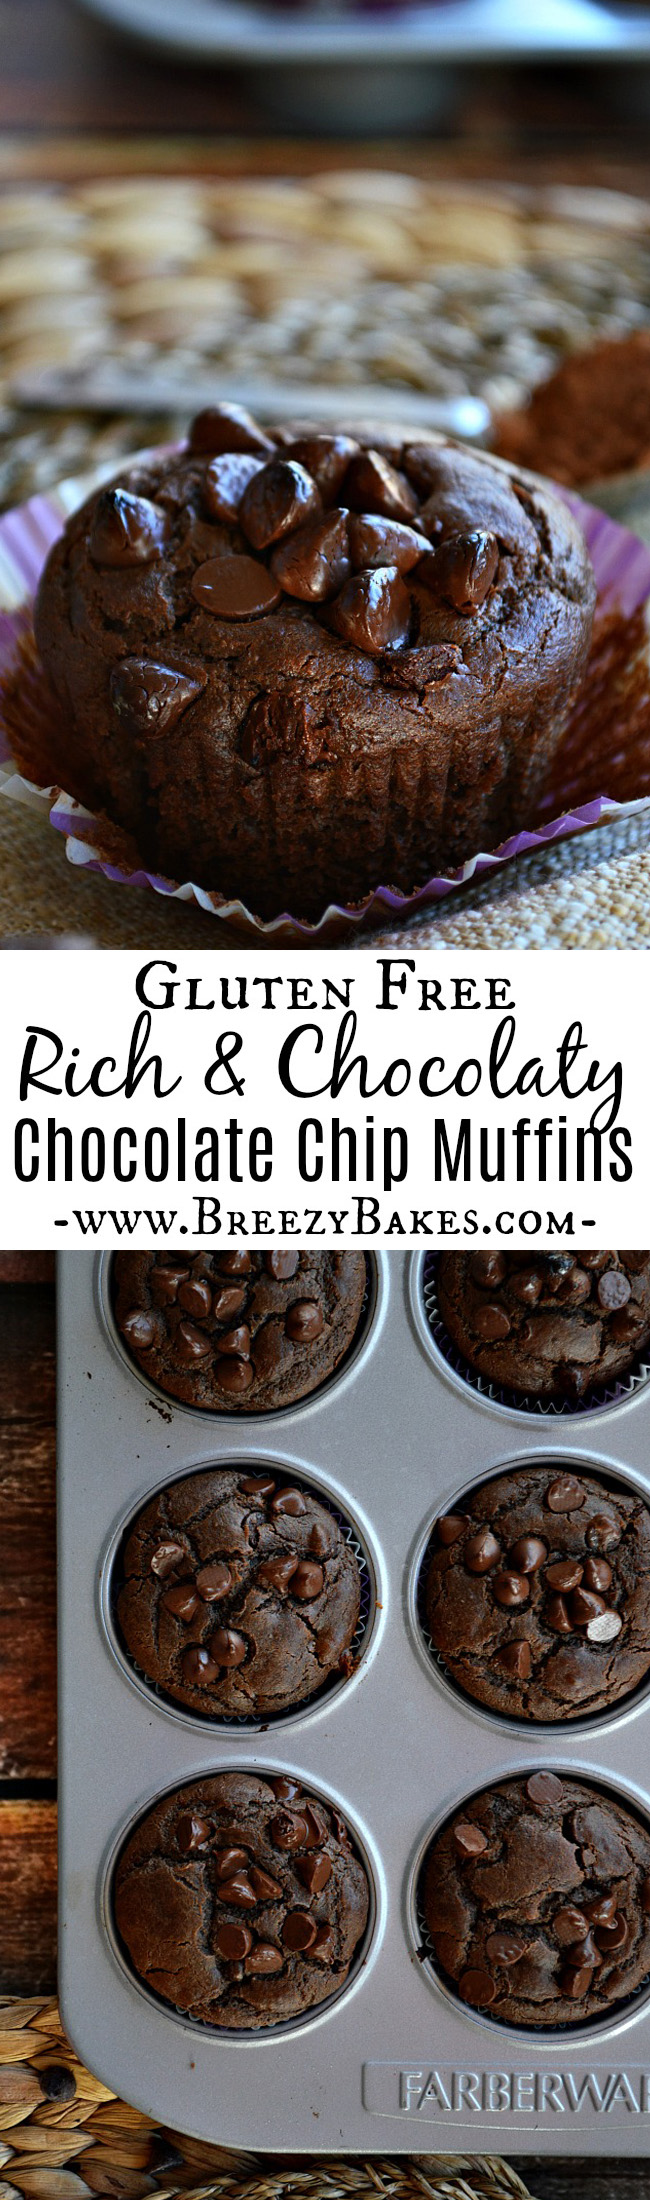 Greet the morning with these perfectly sweet Gluten Free Dark Chocolate Muffins. With a scoop of cocoa powder, a shot of instant coffee granules, and a handful of dark chocolate chips, these muffins are full of rich chocolate flavor.